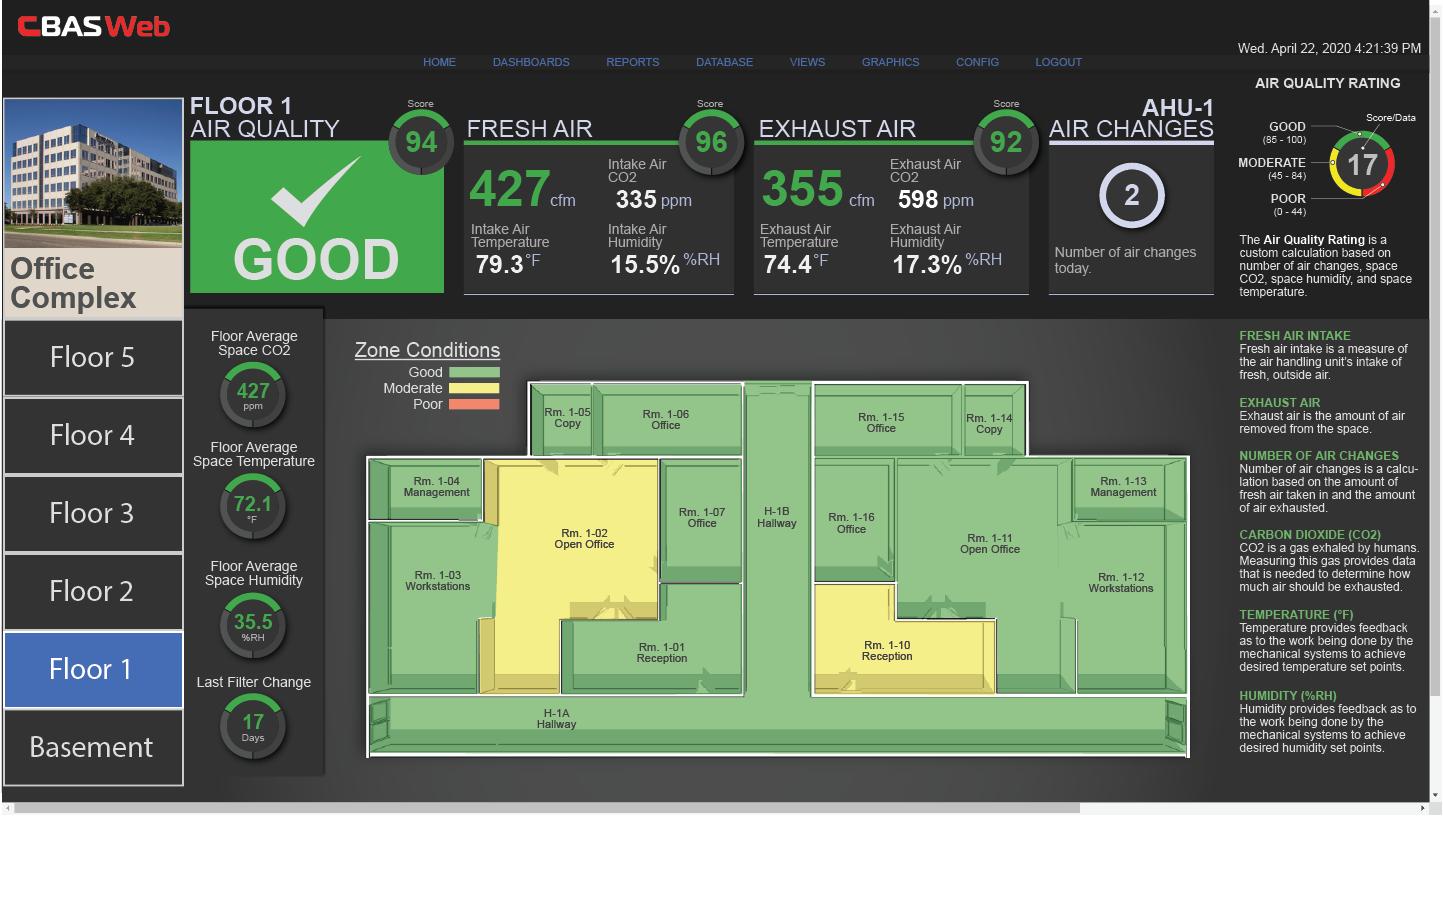 Indoor Air Quality (IAQ) Dashboard